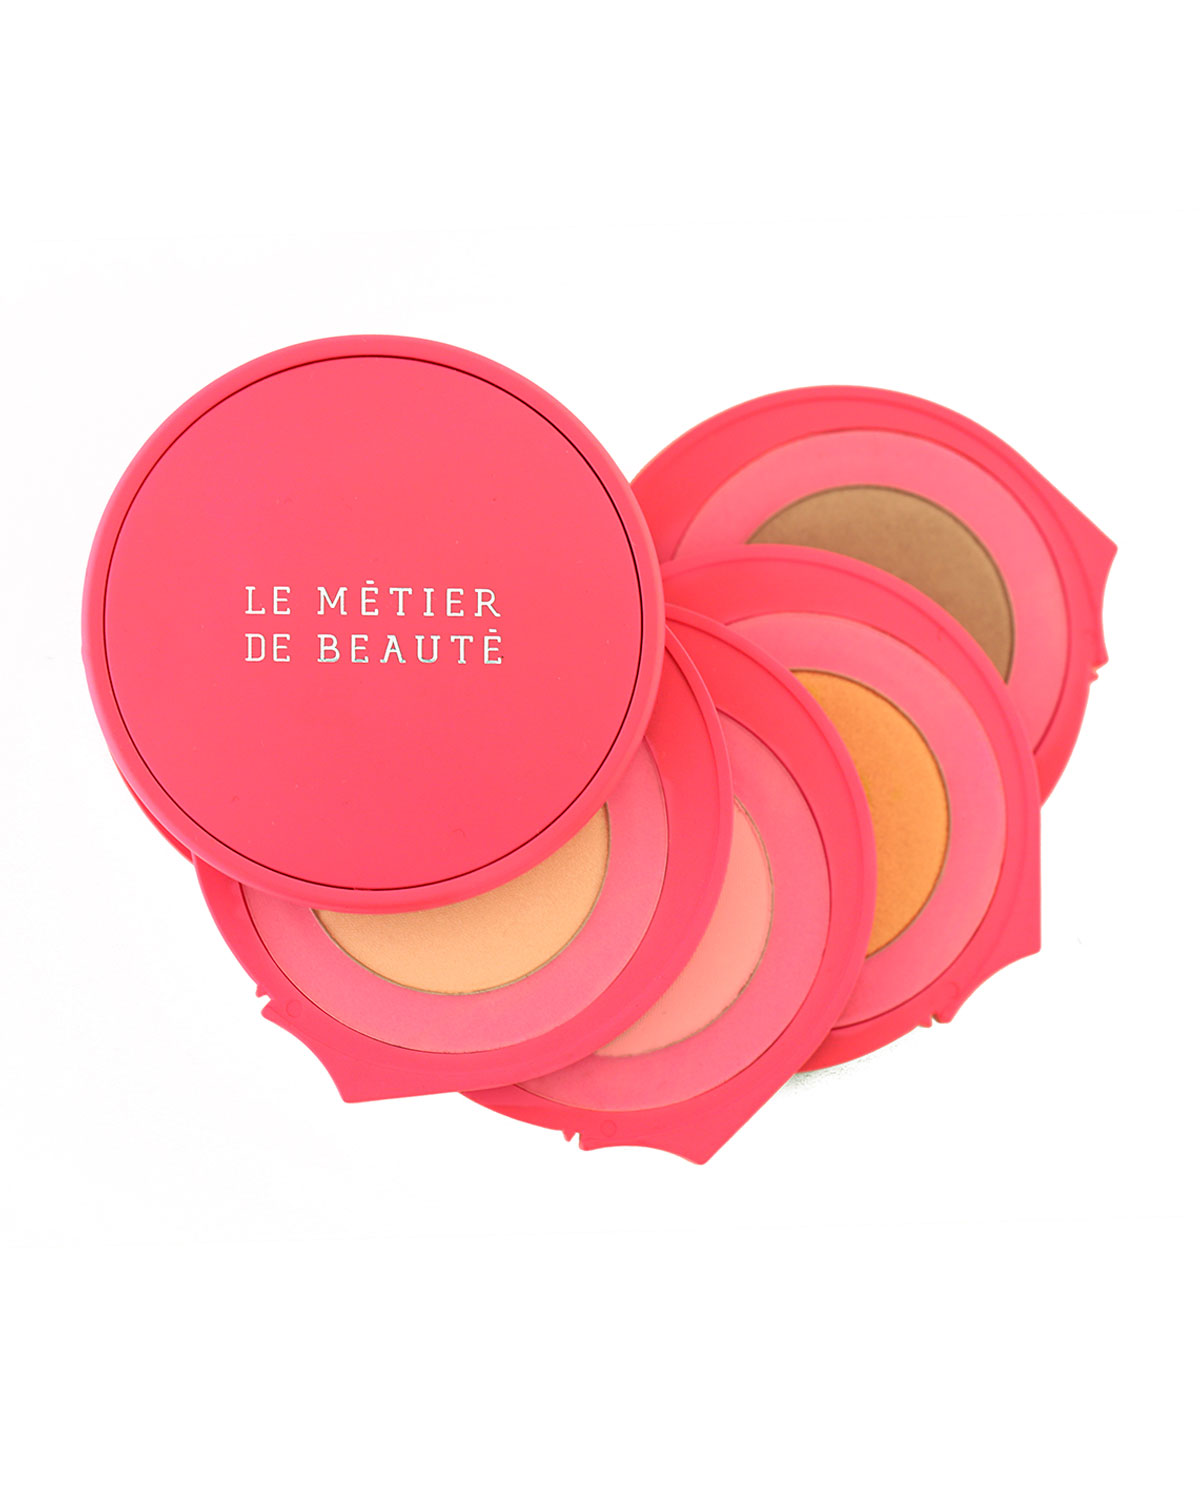 Le Metier de Beauté breast cancer awareness makeup palette